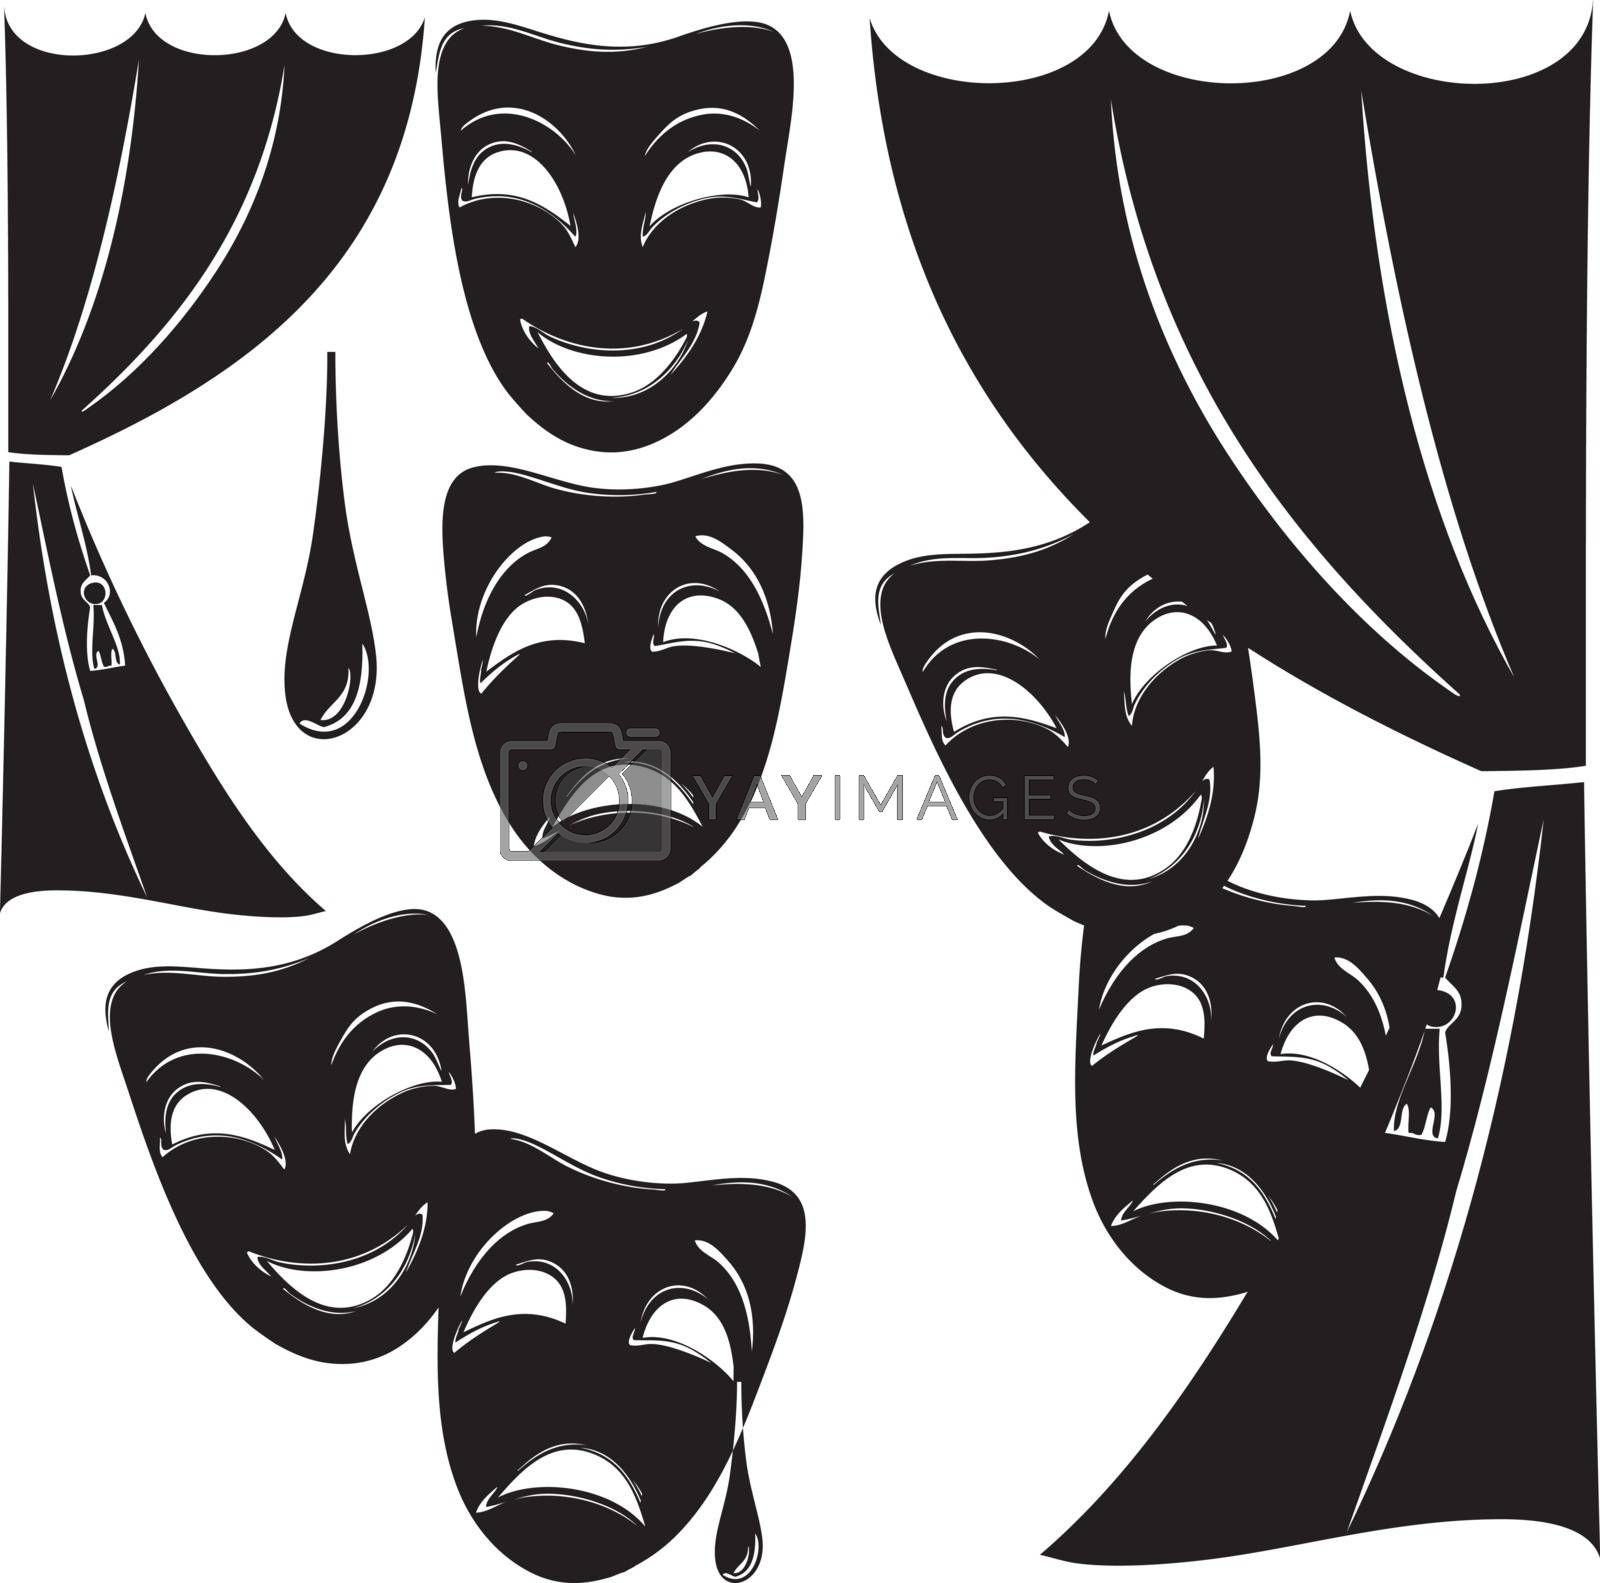 Royalty free image of Theatrical symbolism by VIPDesignUSA